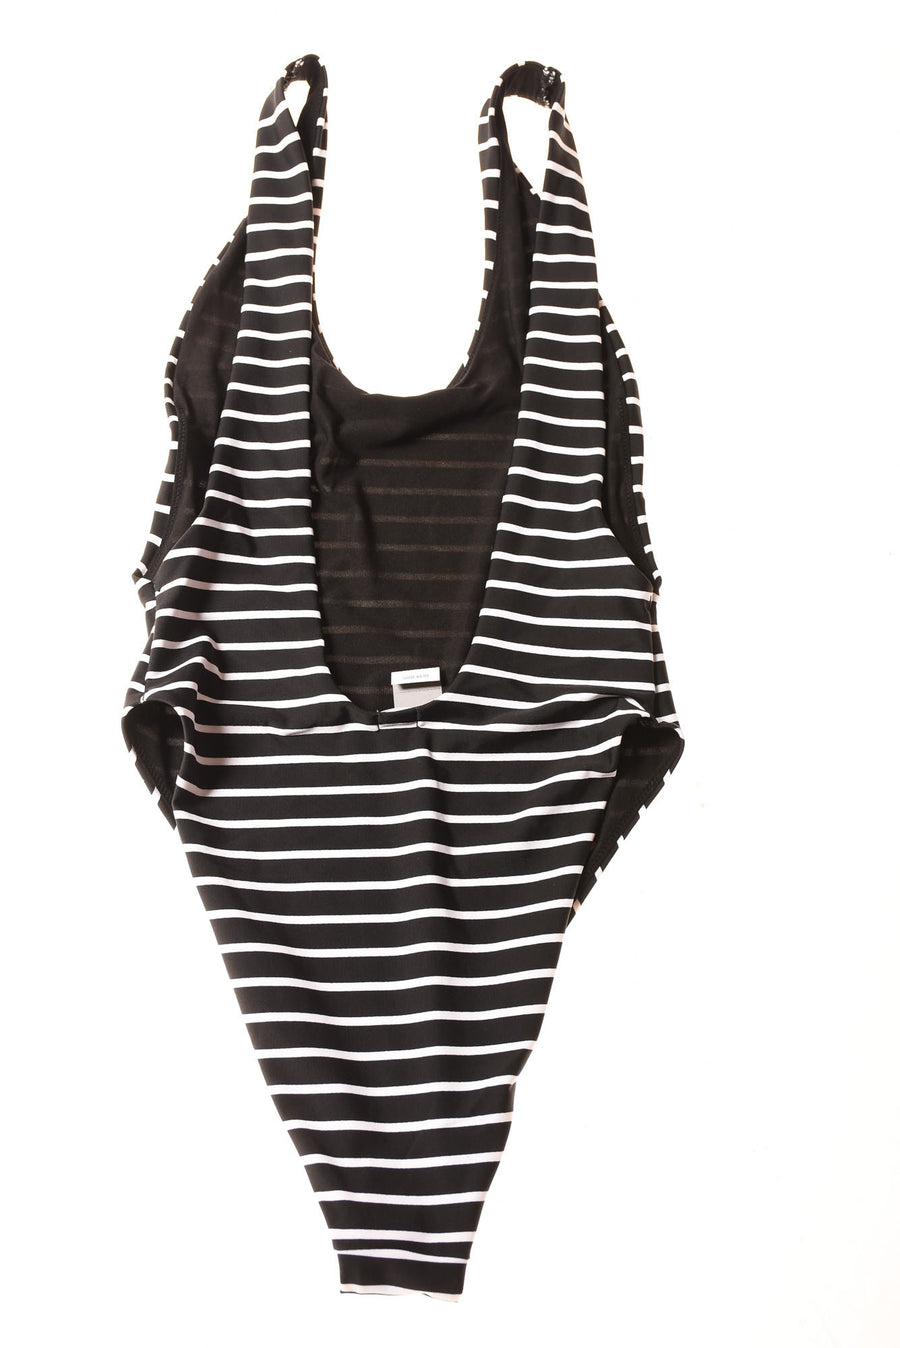 NEW Aerie Women's Swimwear Small Black & White / Stripe